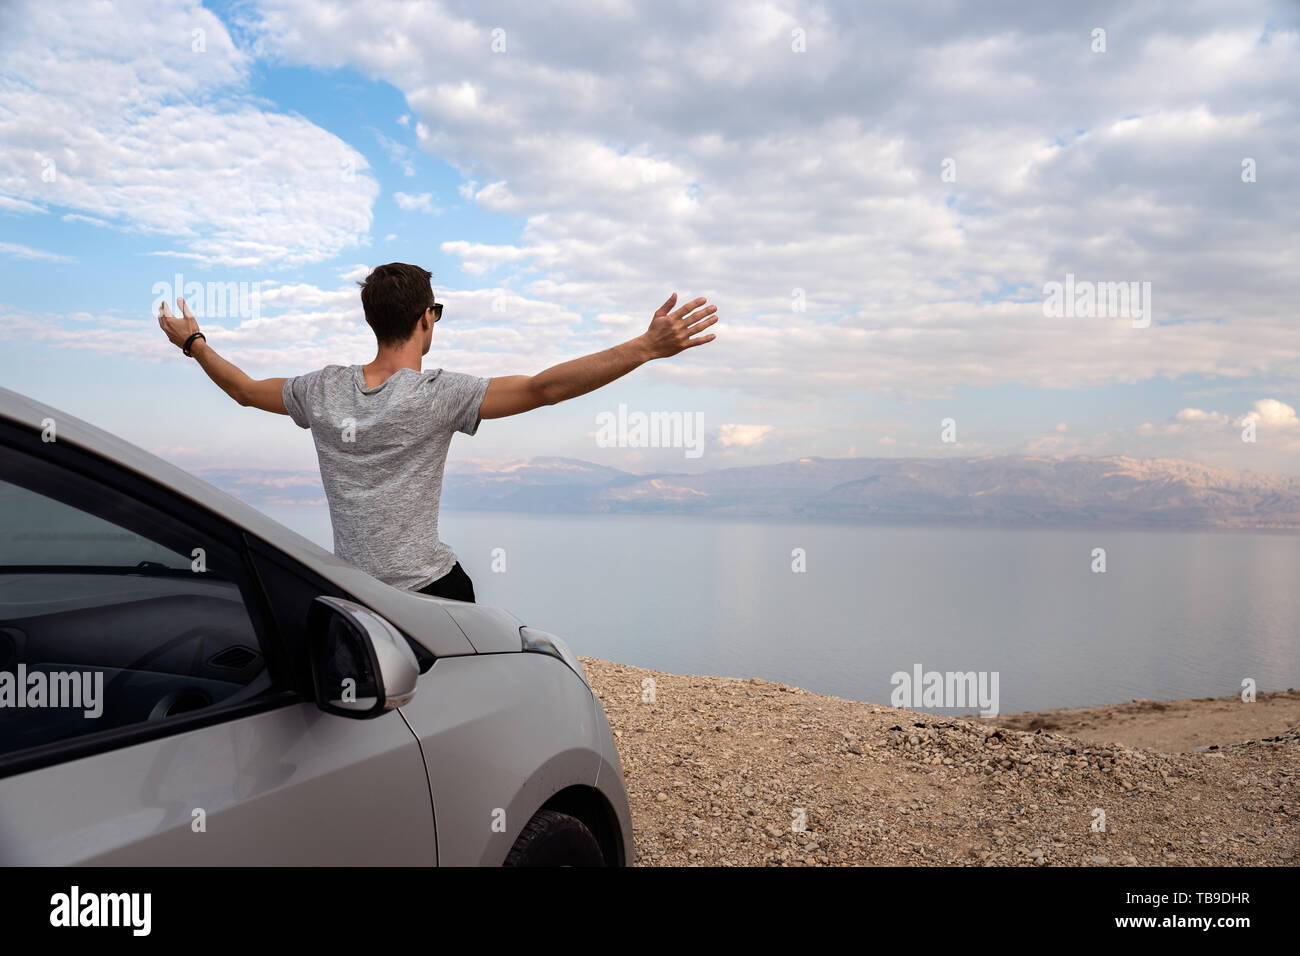 Man seated on the engine hood of a rented car. Dead sea as background - Stock Image